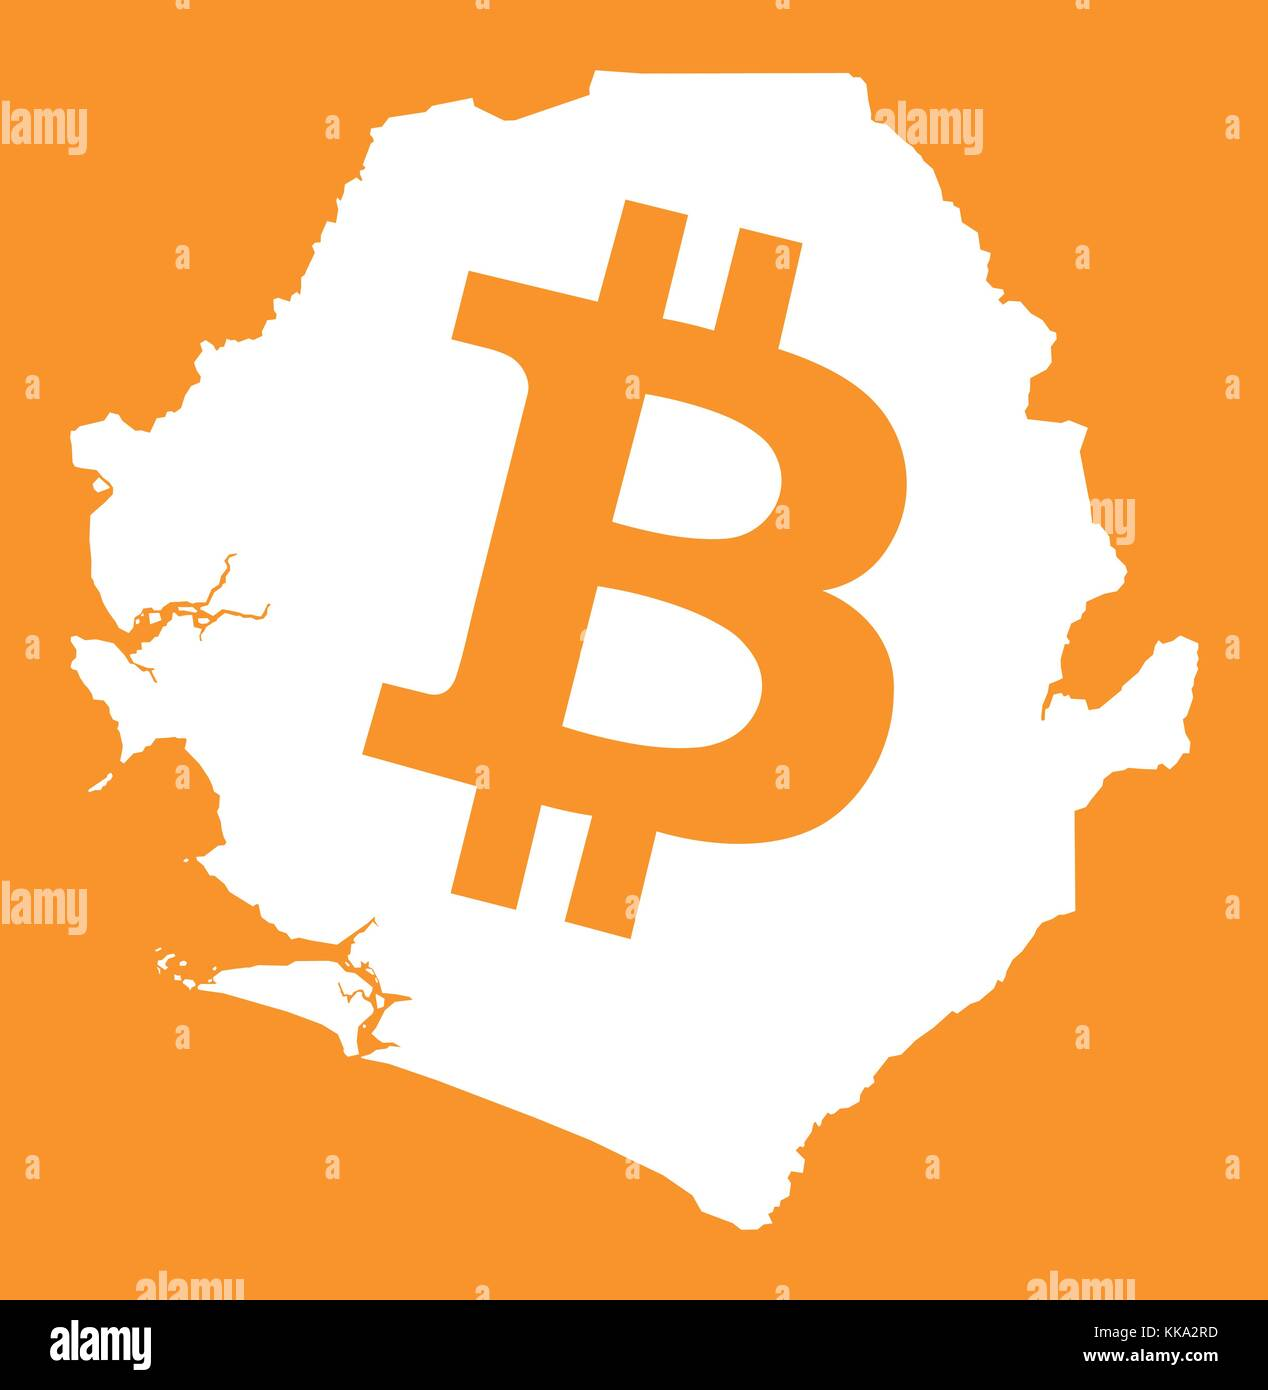 Bank of sierra leone stock photos bank of sierra leone stock sierra leone map with bitcoin crypto currency symbol illustration stock image biocorpaavc